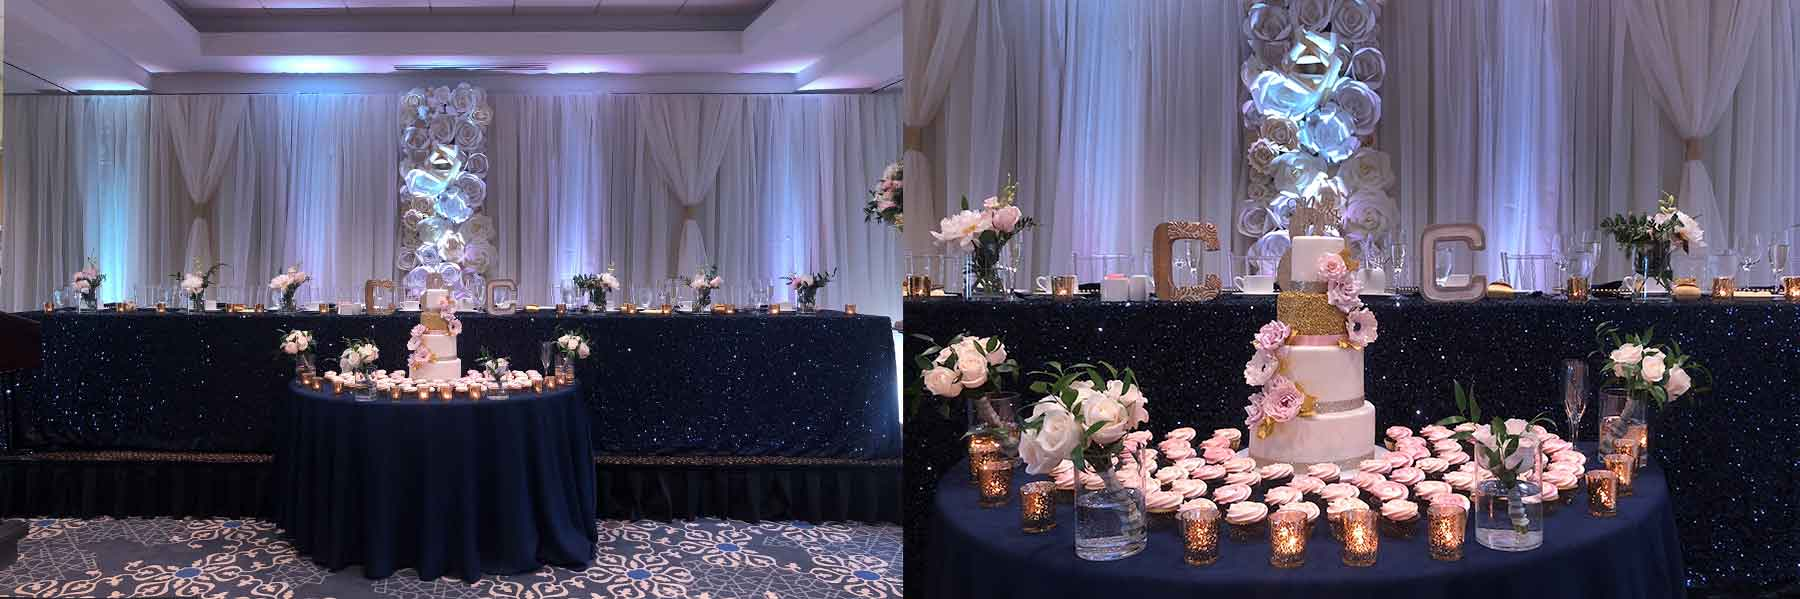 Uplighting-&-decor-at-Bayview-Golf-&-Country-Club-Thornhill-Ontario